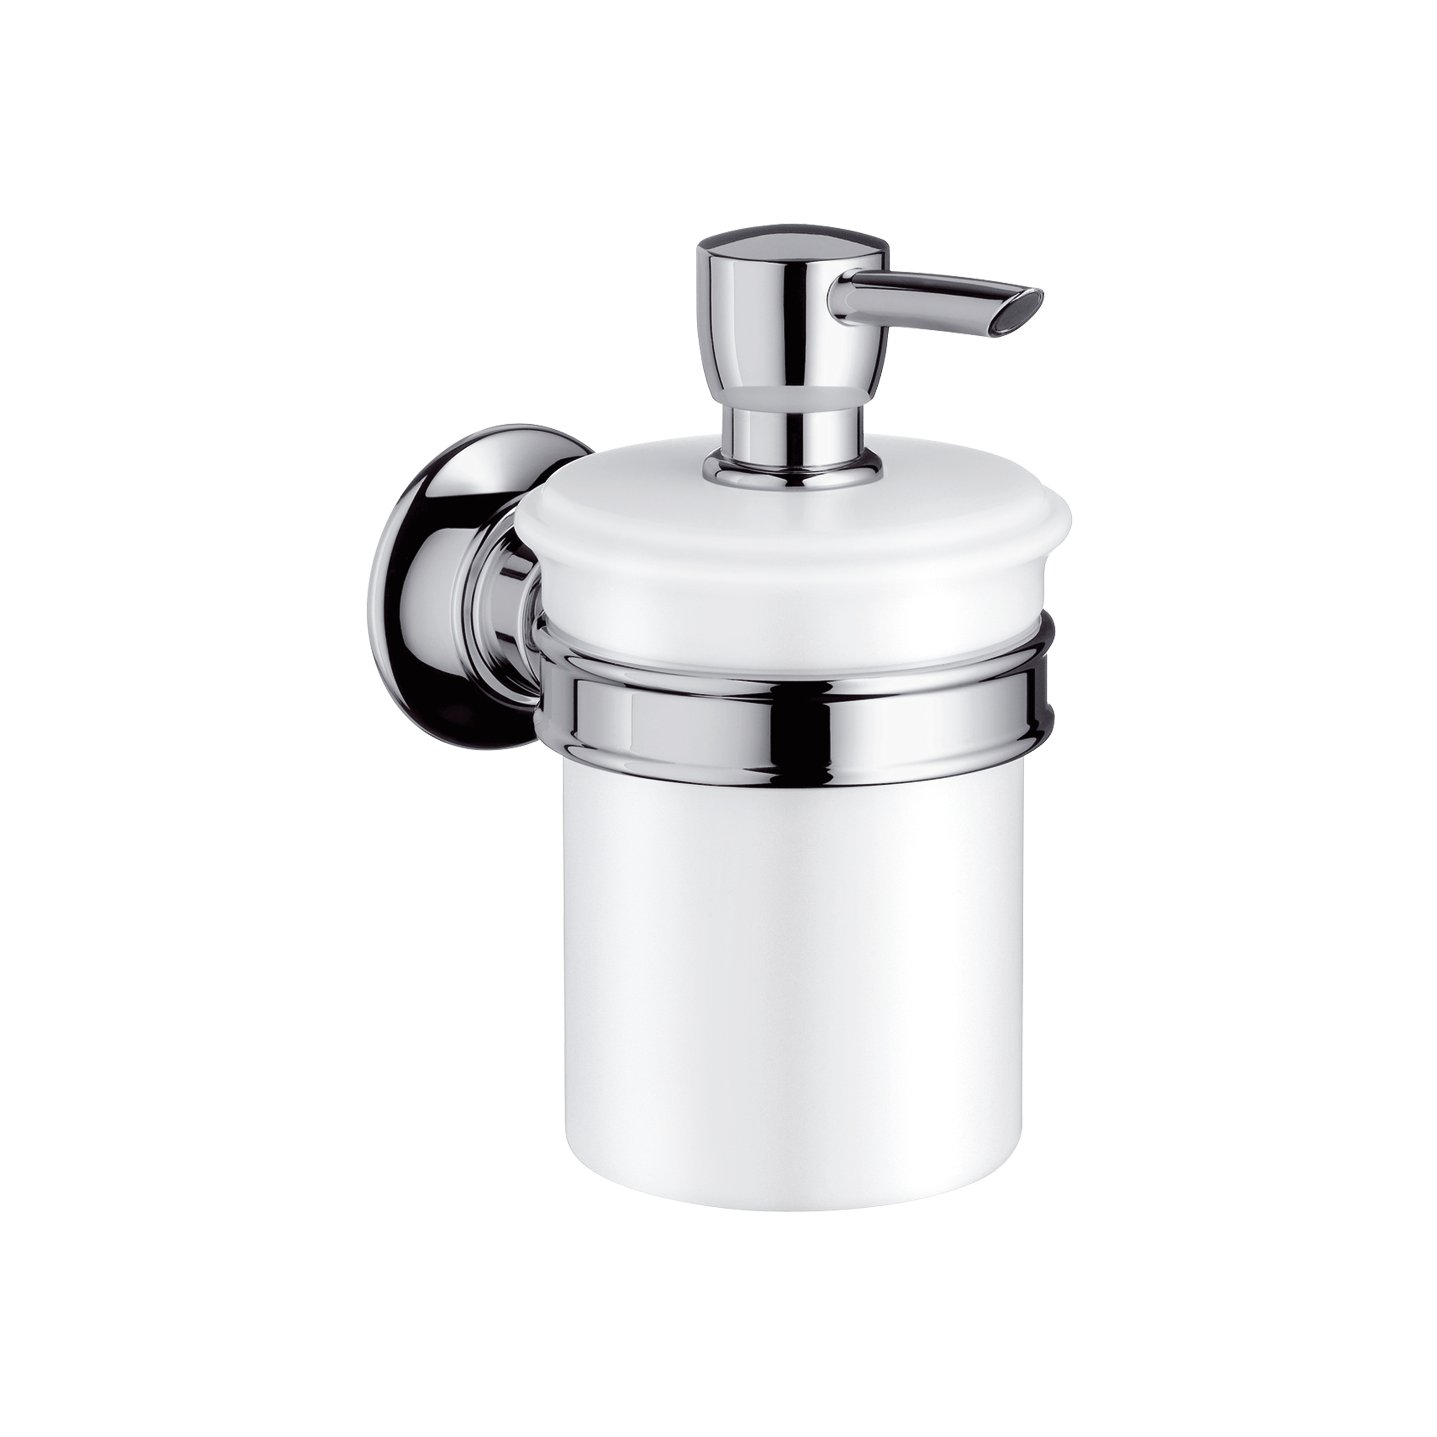 Axor 42019820 Wall-Mounted 8oz Soap Lotion Dispenser, Brushed Nickel